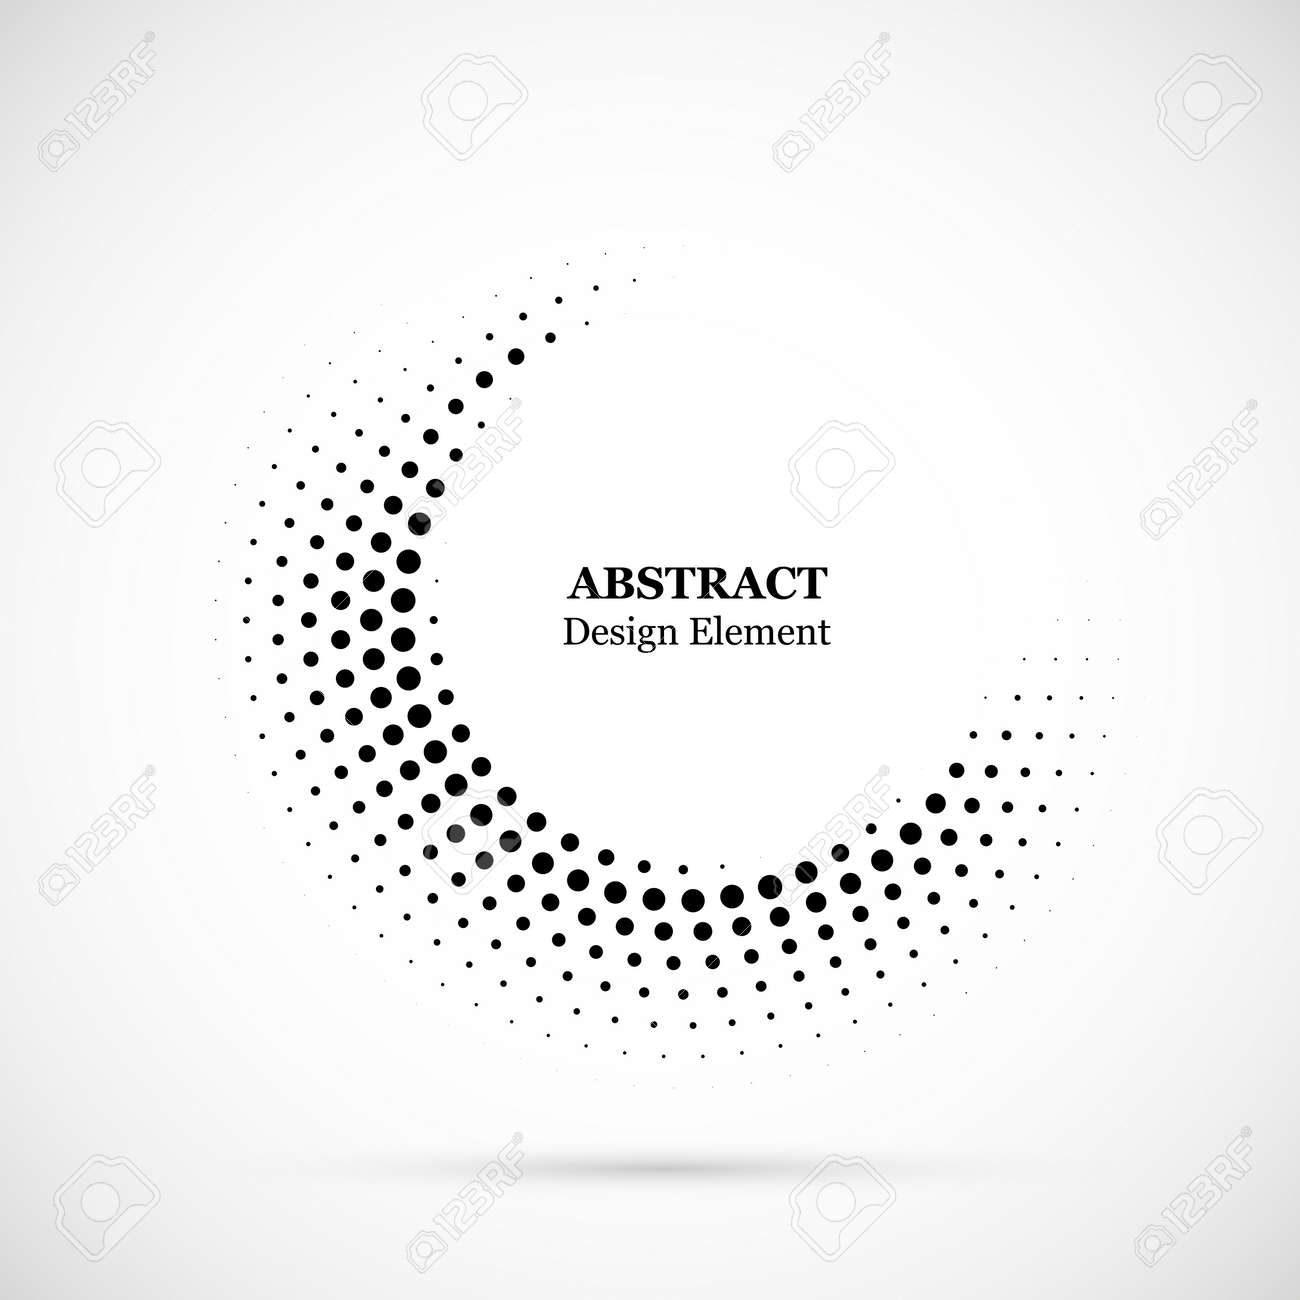 Halftone dotted background circularly distributed. Halftone effect vector pattern. Circle dots isolated on the white background. - 125974711